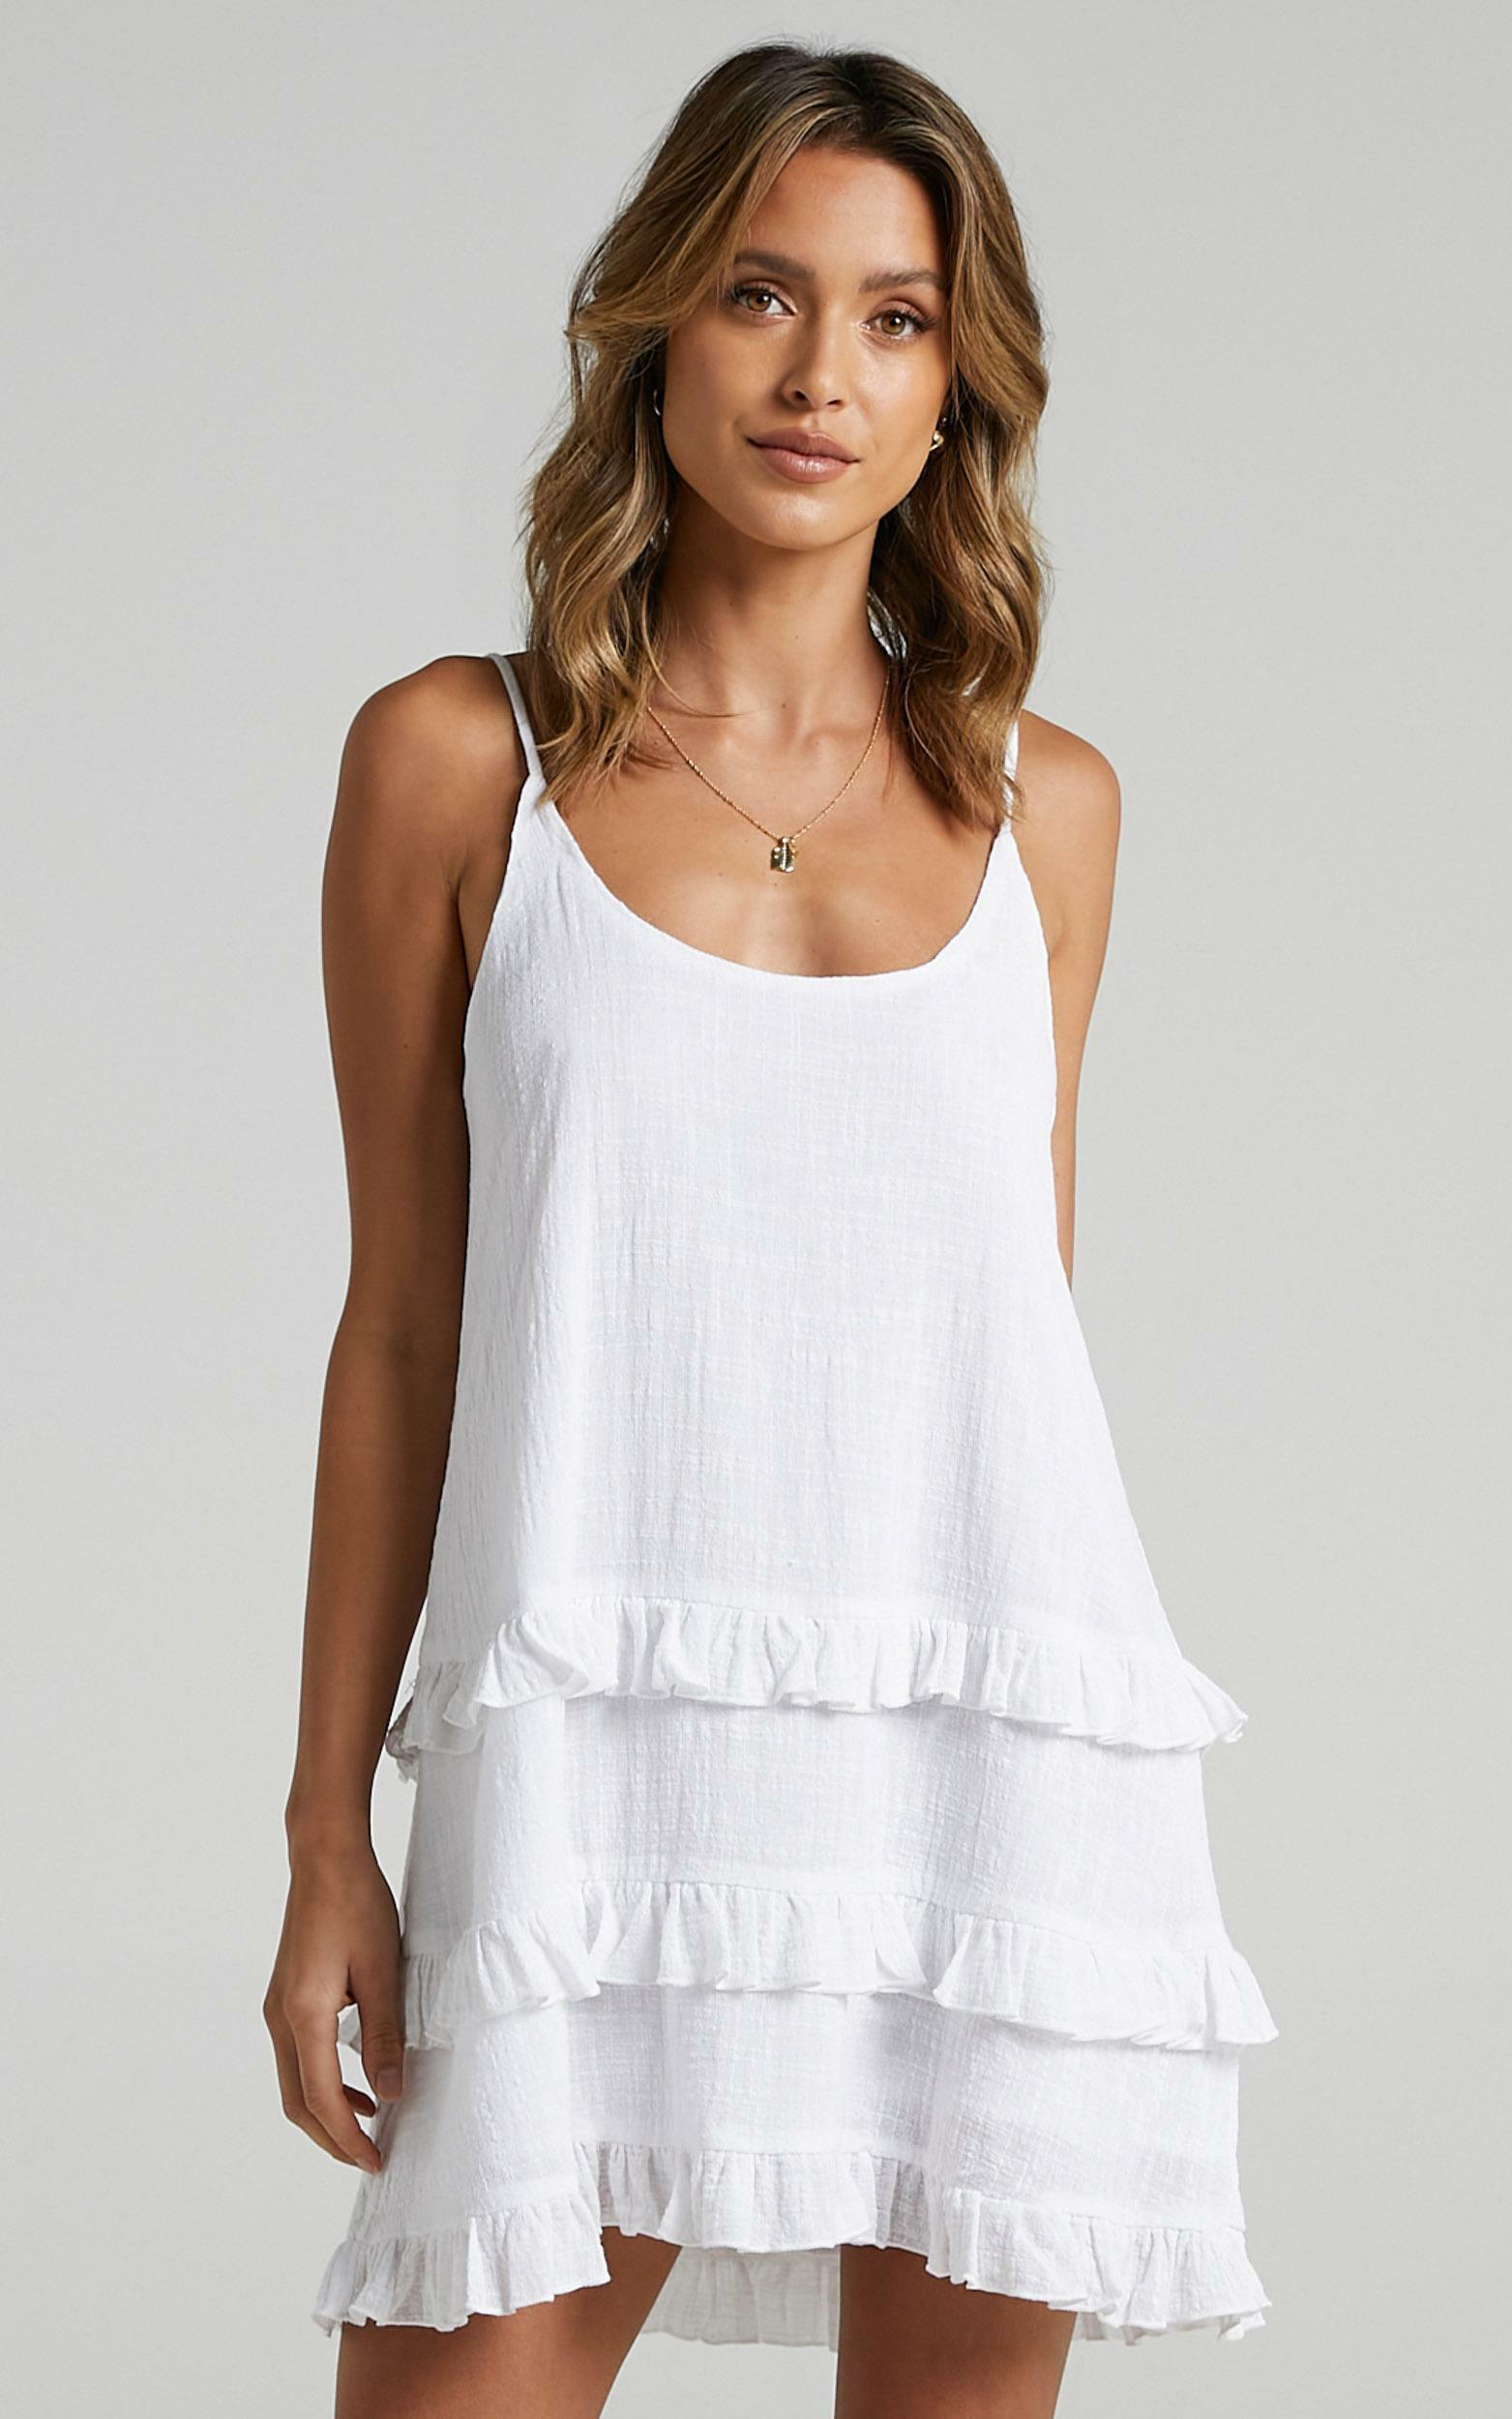 Long Reflections Dress in White - 20, WHT5, hi-res image number null